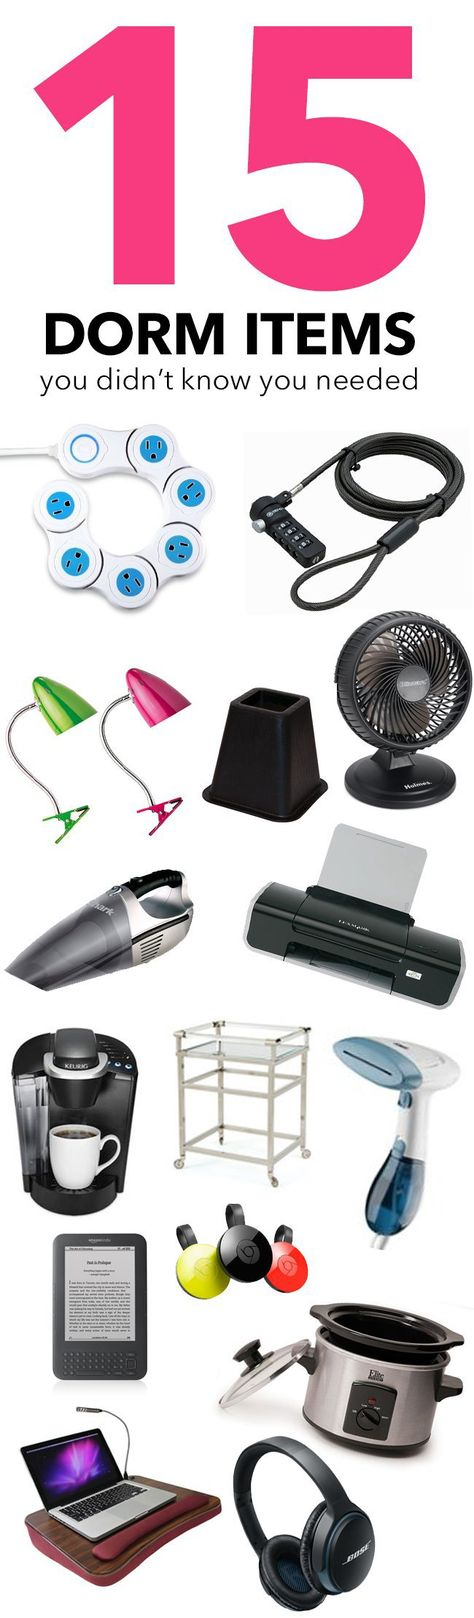 15 Dorm Items You Didn't Know You Needed - Society19